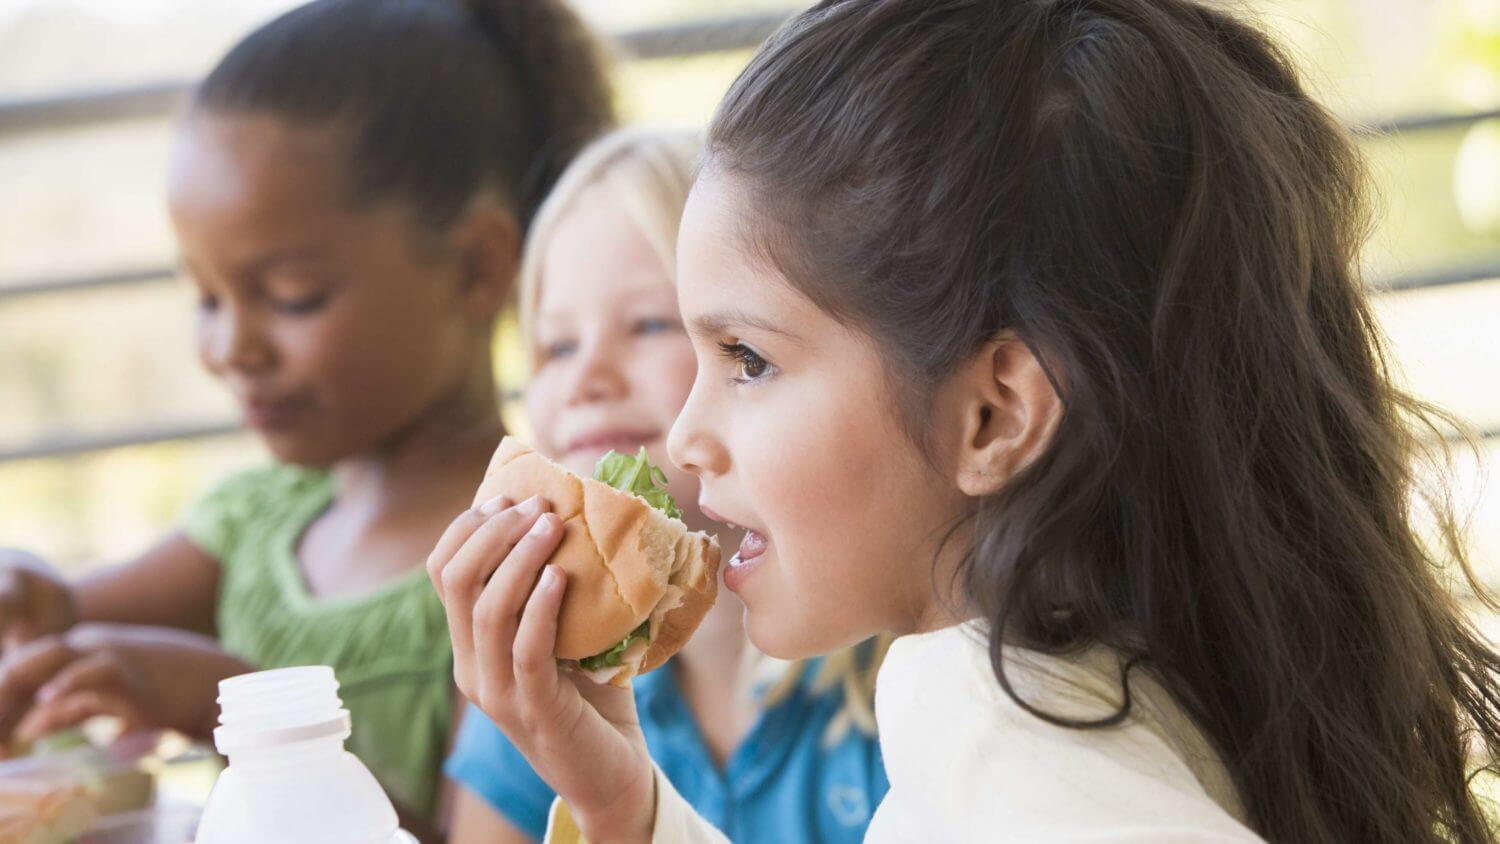 180 Leeds Schools Will Ditch Meat Twice a Week for the Planet